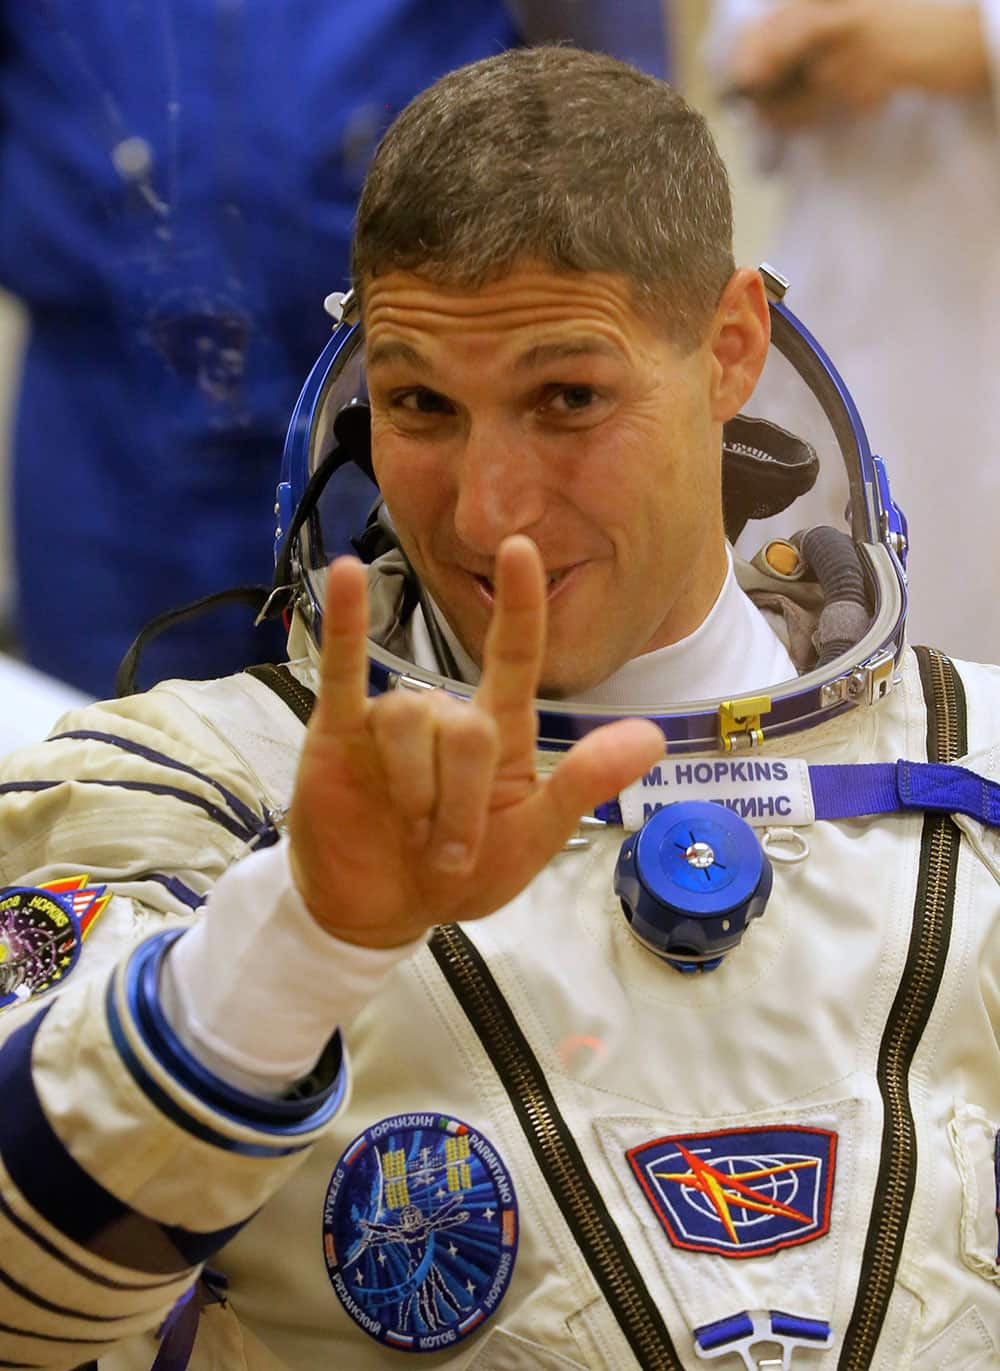 US astronaut Michael Hopkins, crew member of the mission to the International Space Station, ISS, gestures prior the launch of Soyuz-FG rocket at the Russian leased Baikonur cosmodrome, Kazakhstan.